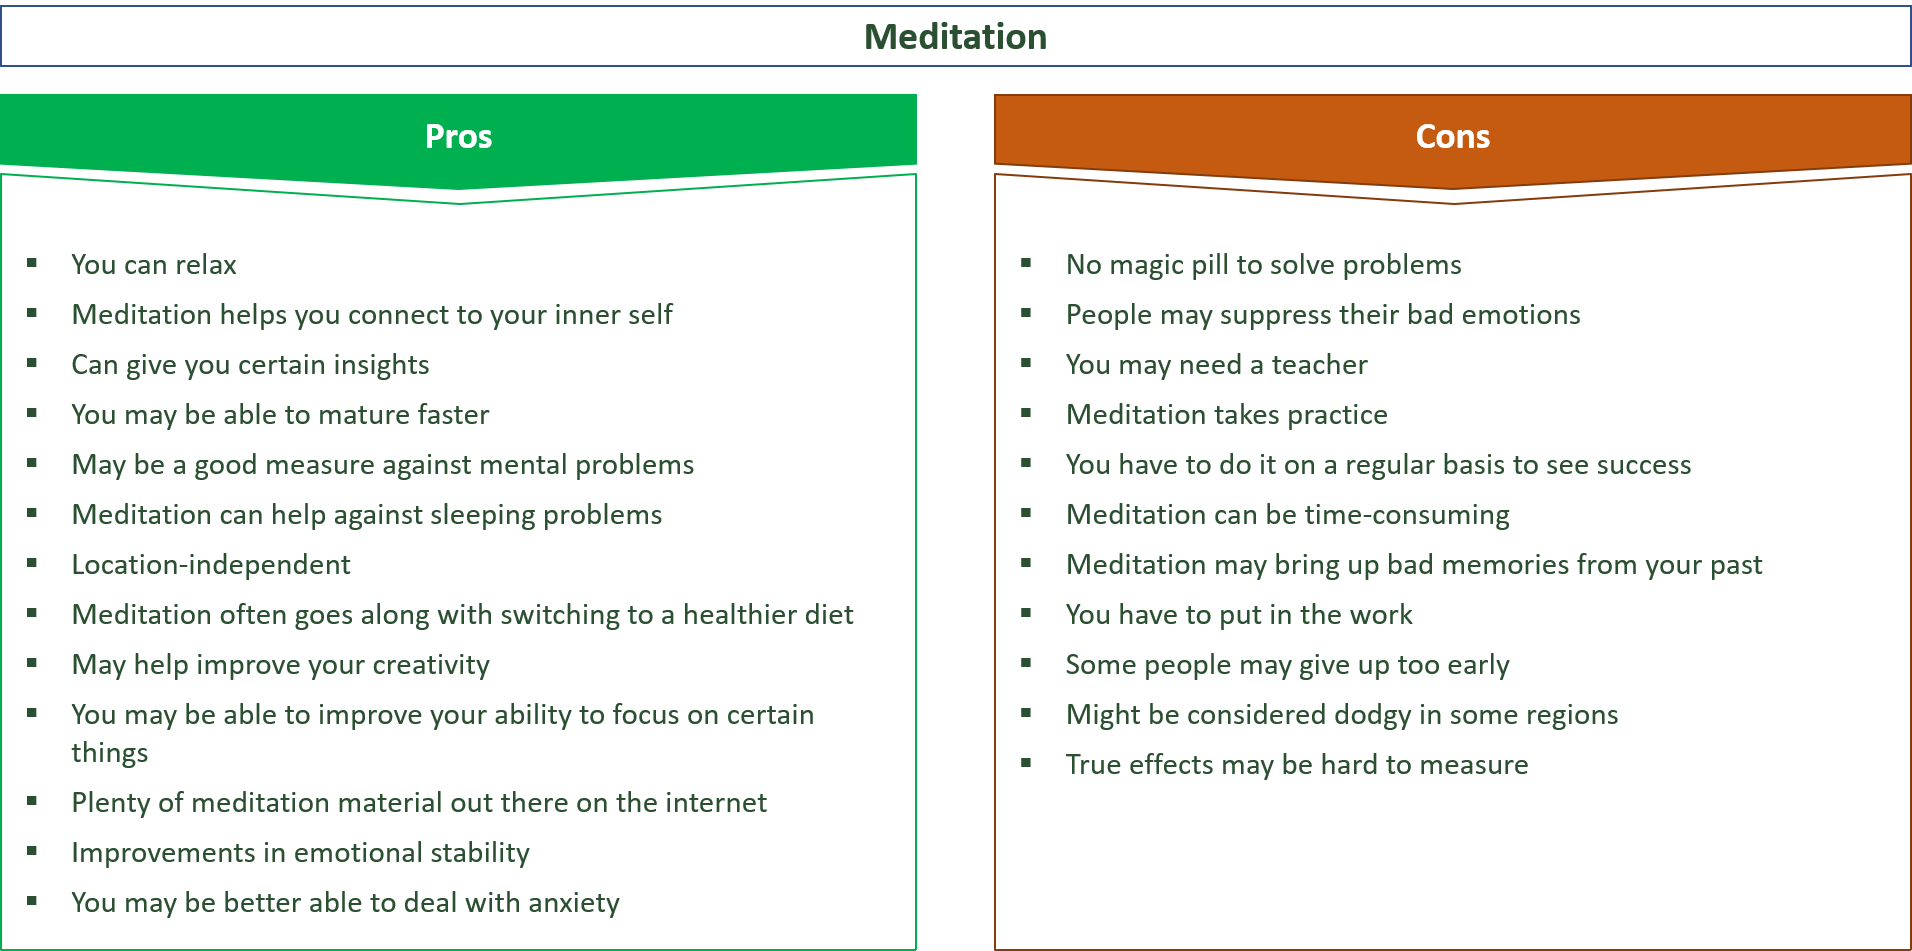 advantages and disadvantages of meditation